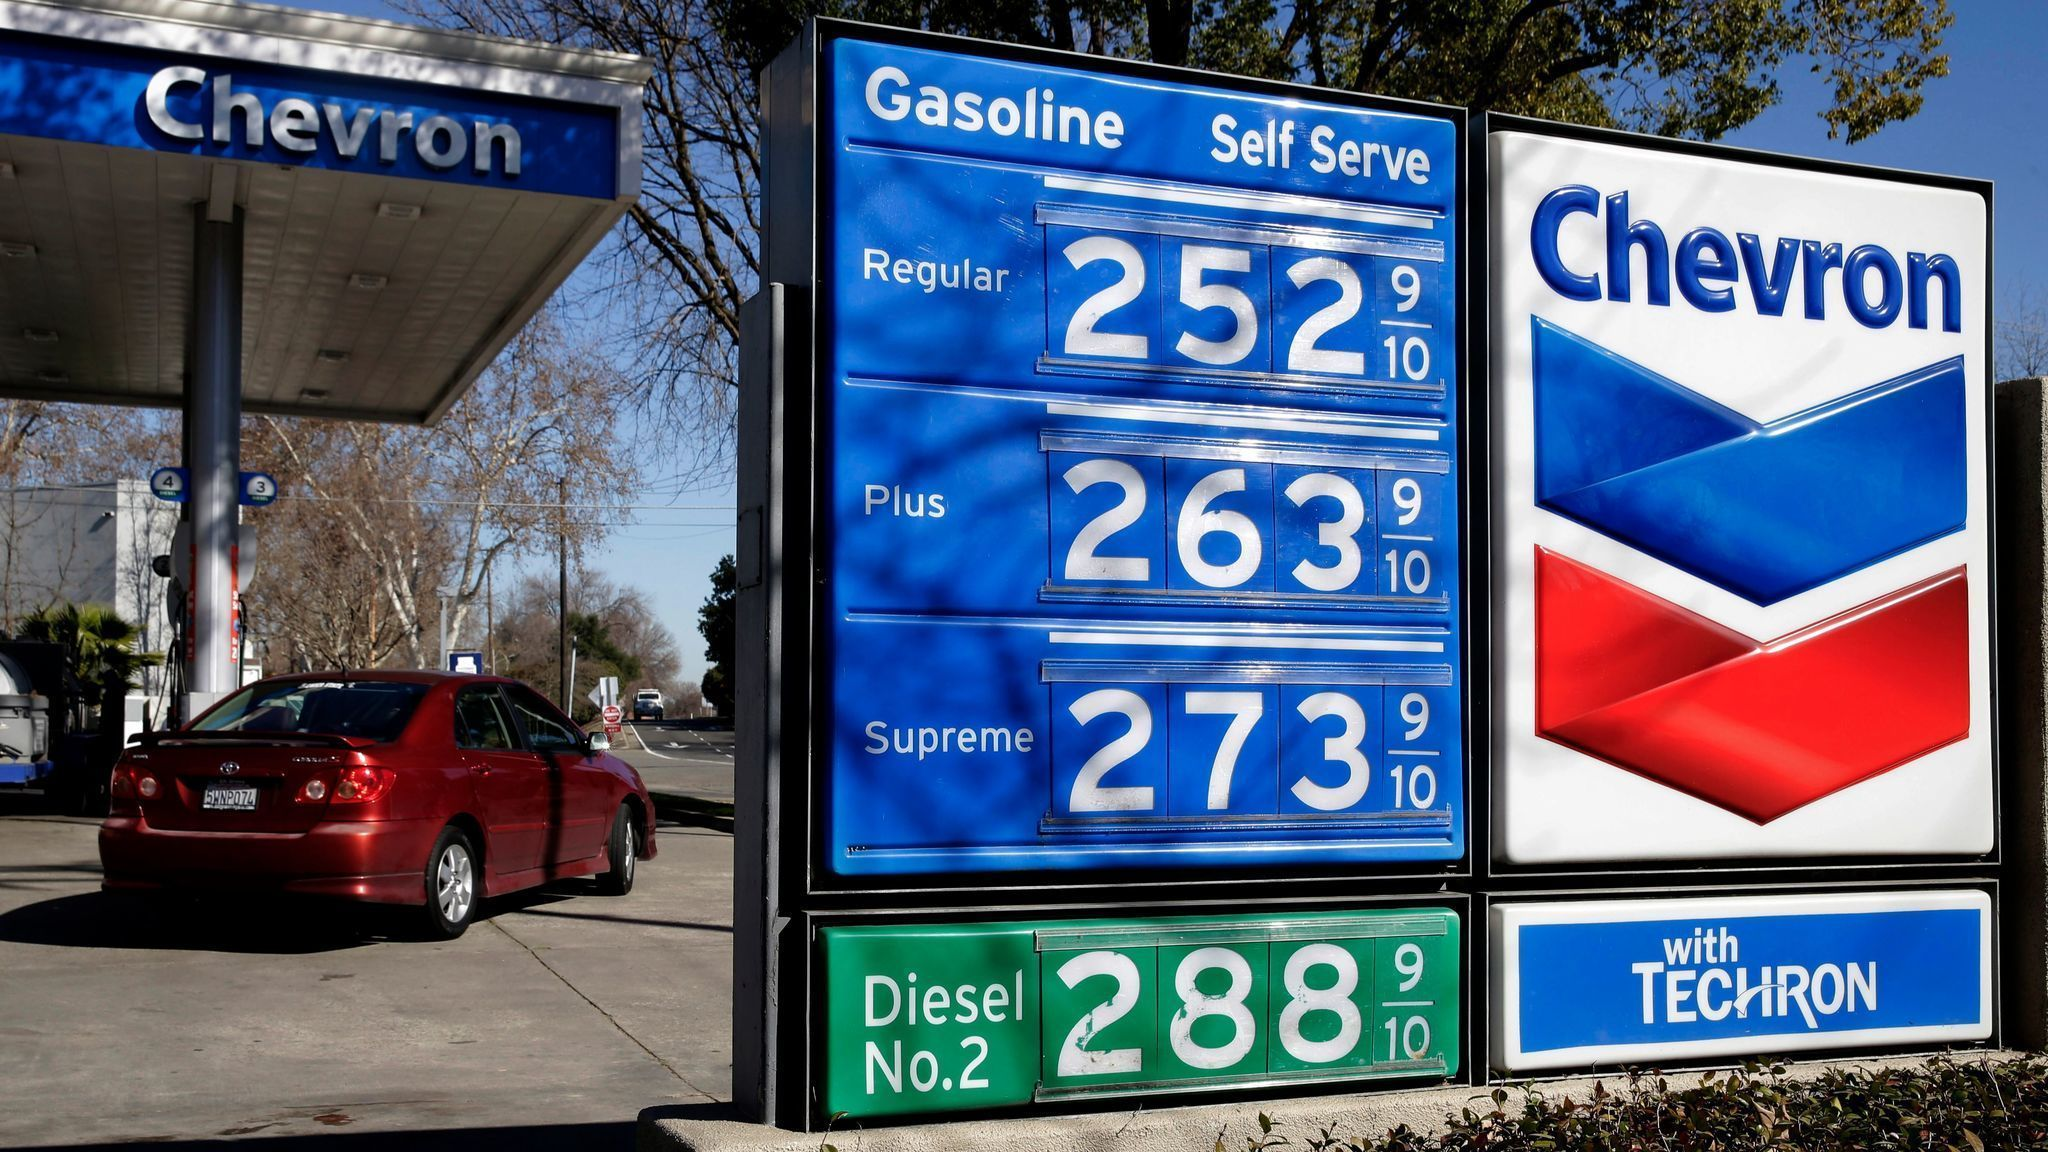 Gas Prices In California >> Group aims to repeal California gas tax hike on November 2018 ballot - The San Diego Union-Tribune